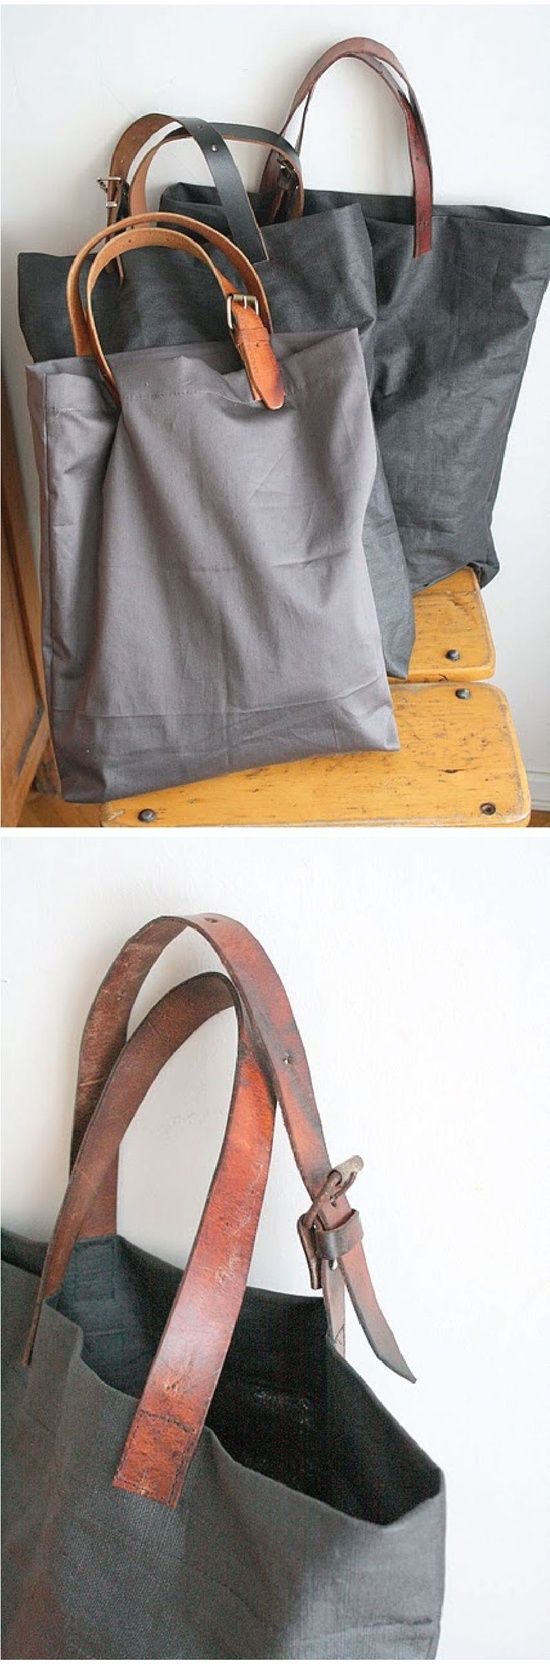 DIY Bag, have to make it from unused leather belt